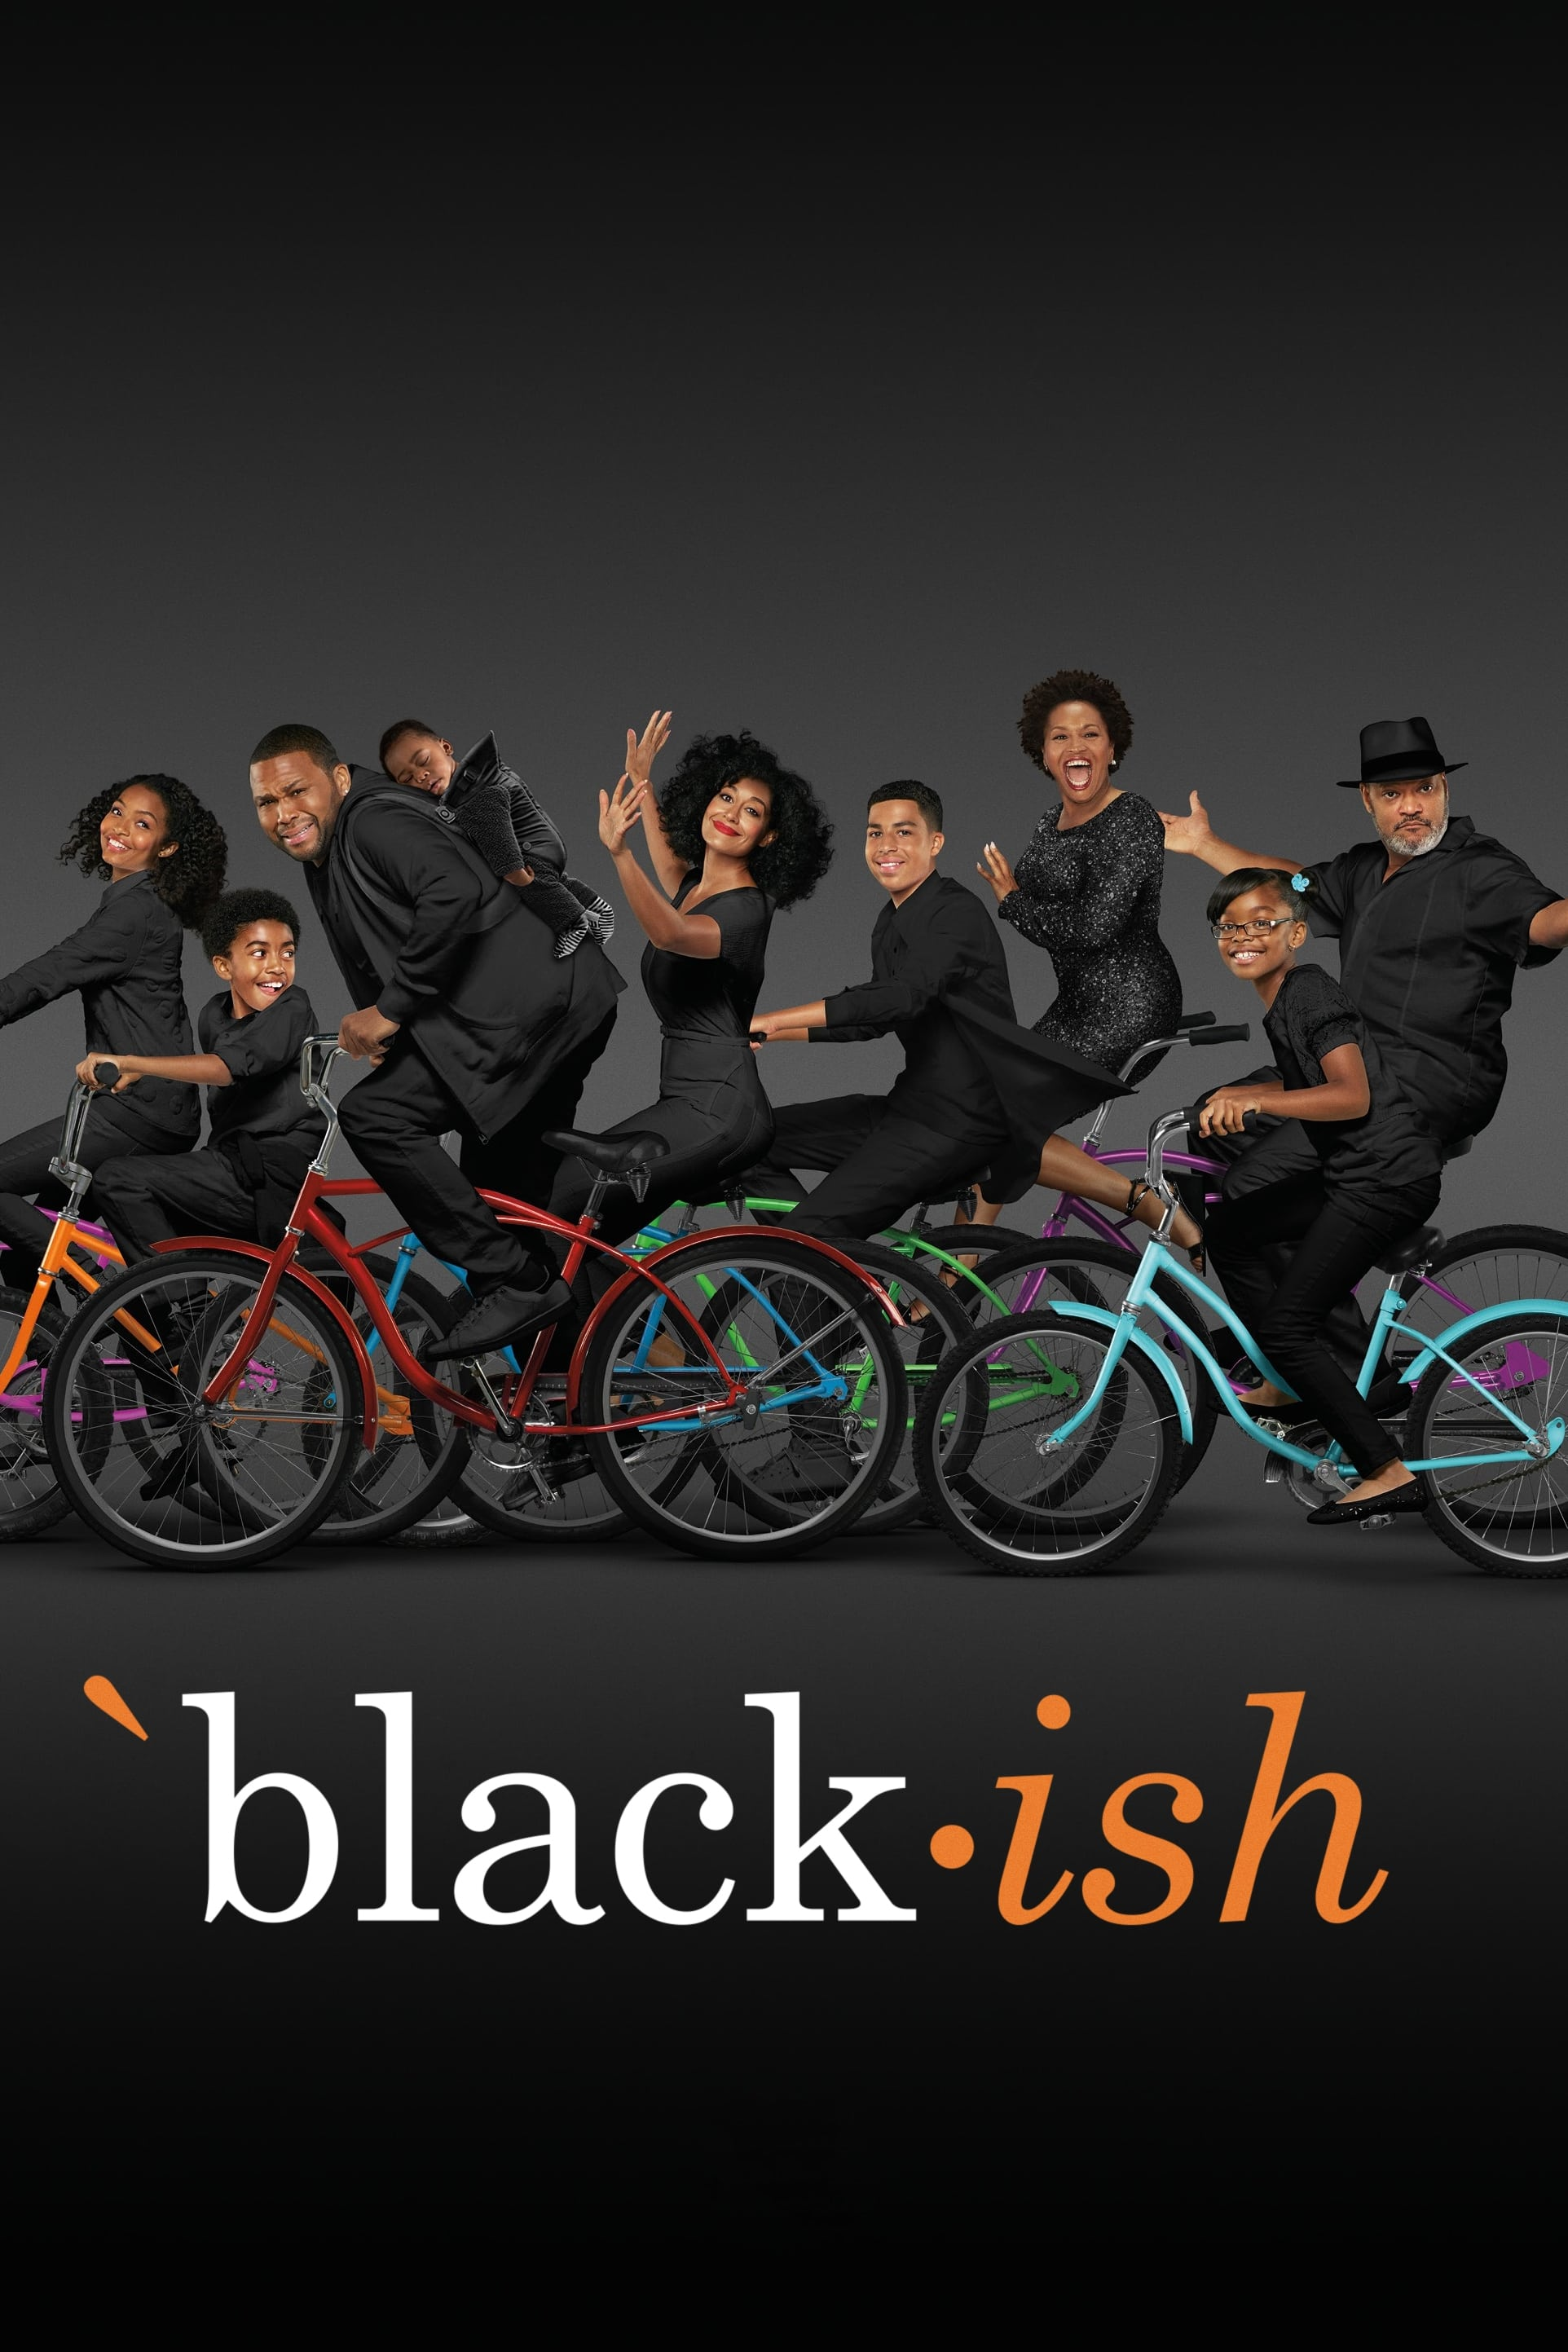 image for black-ish